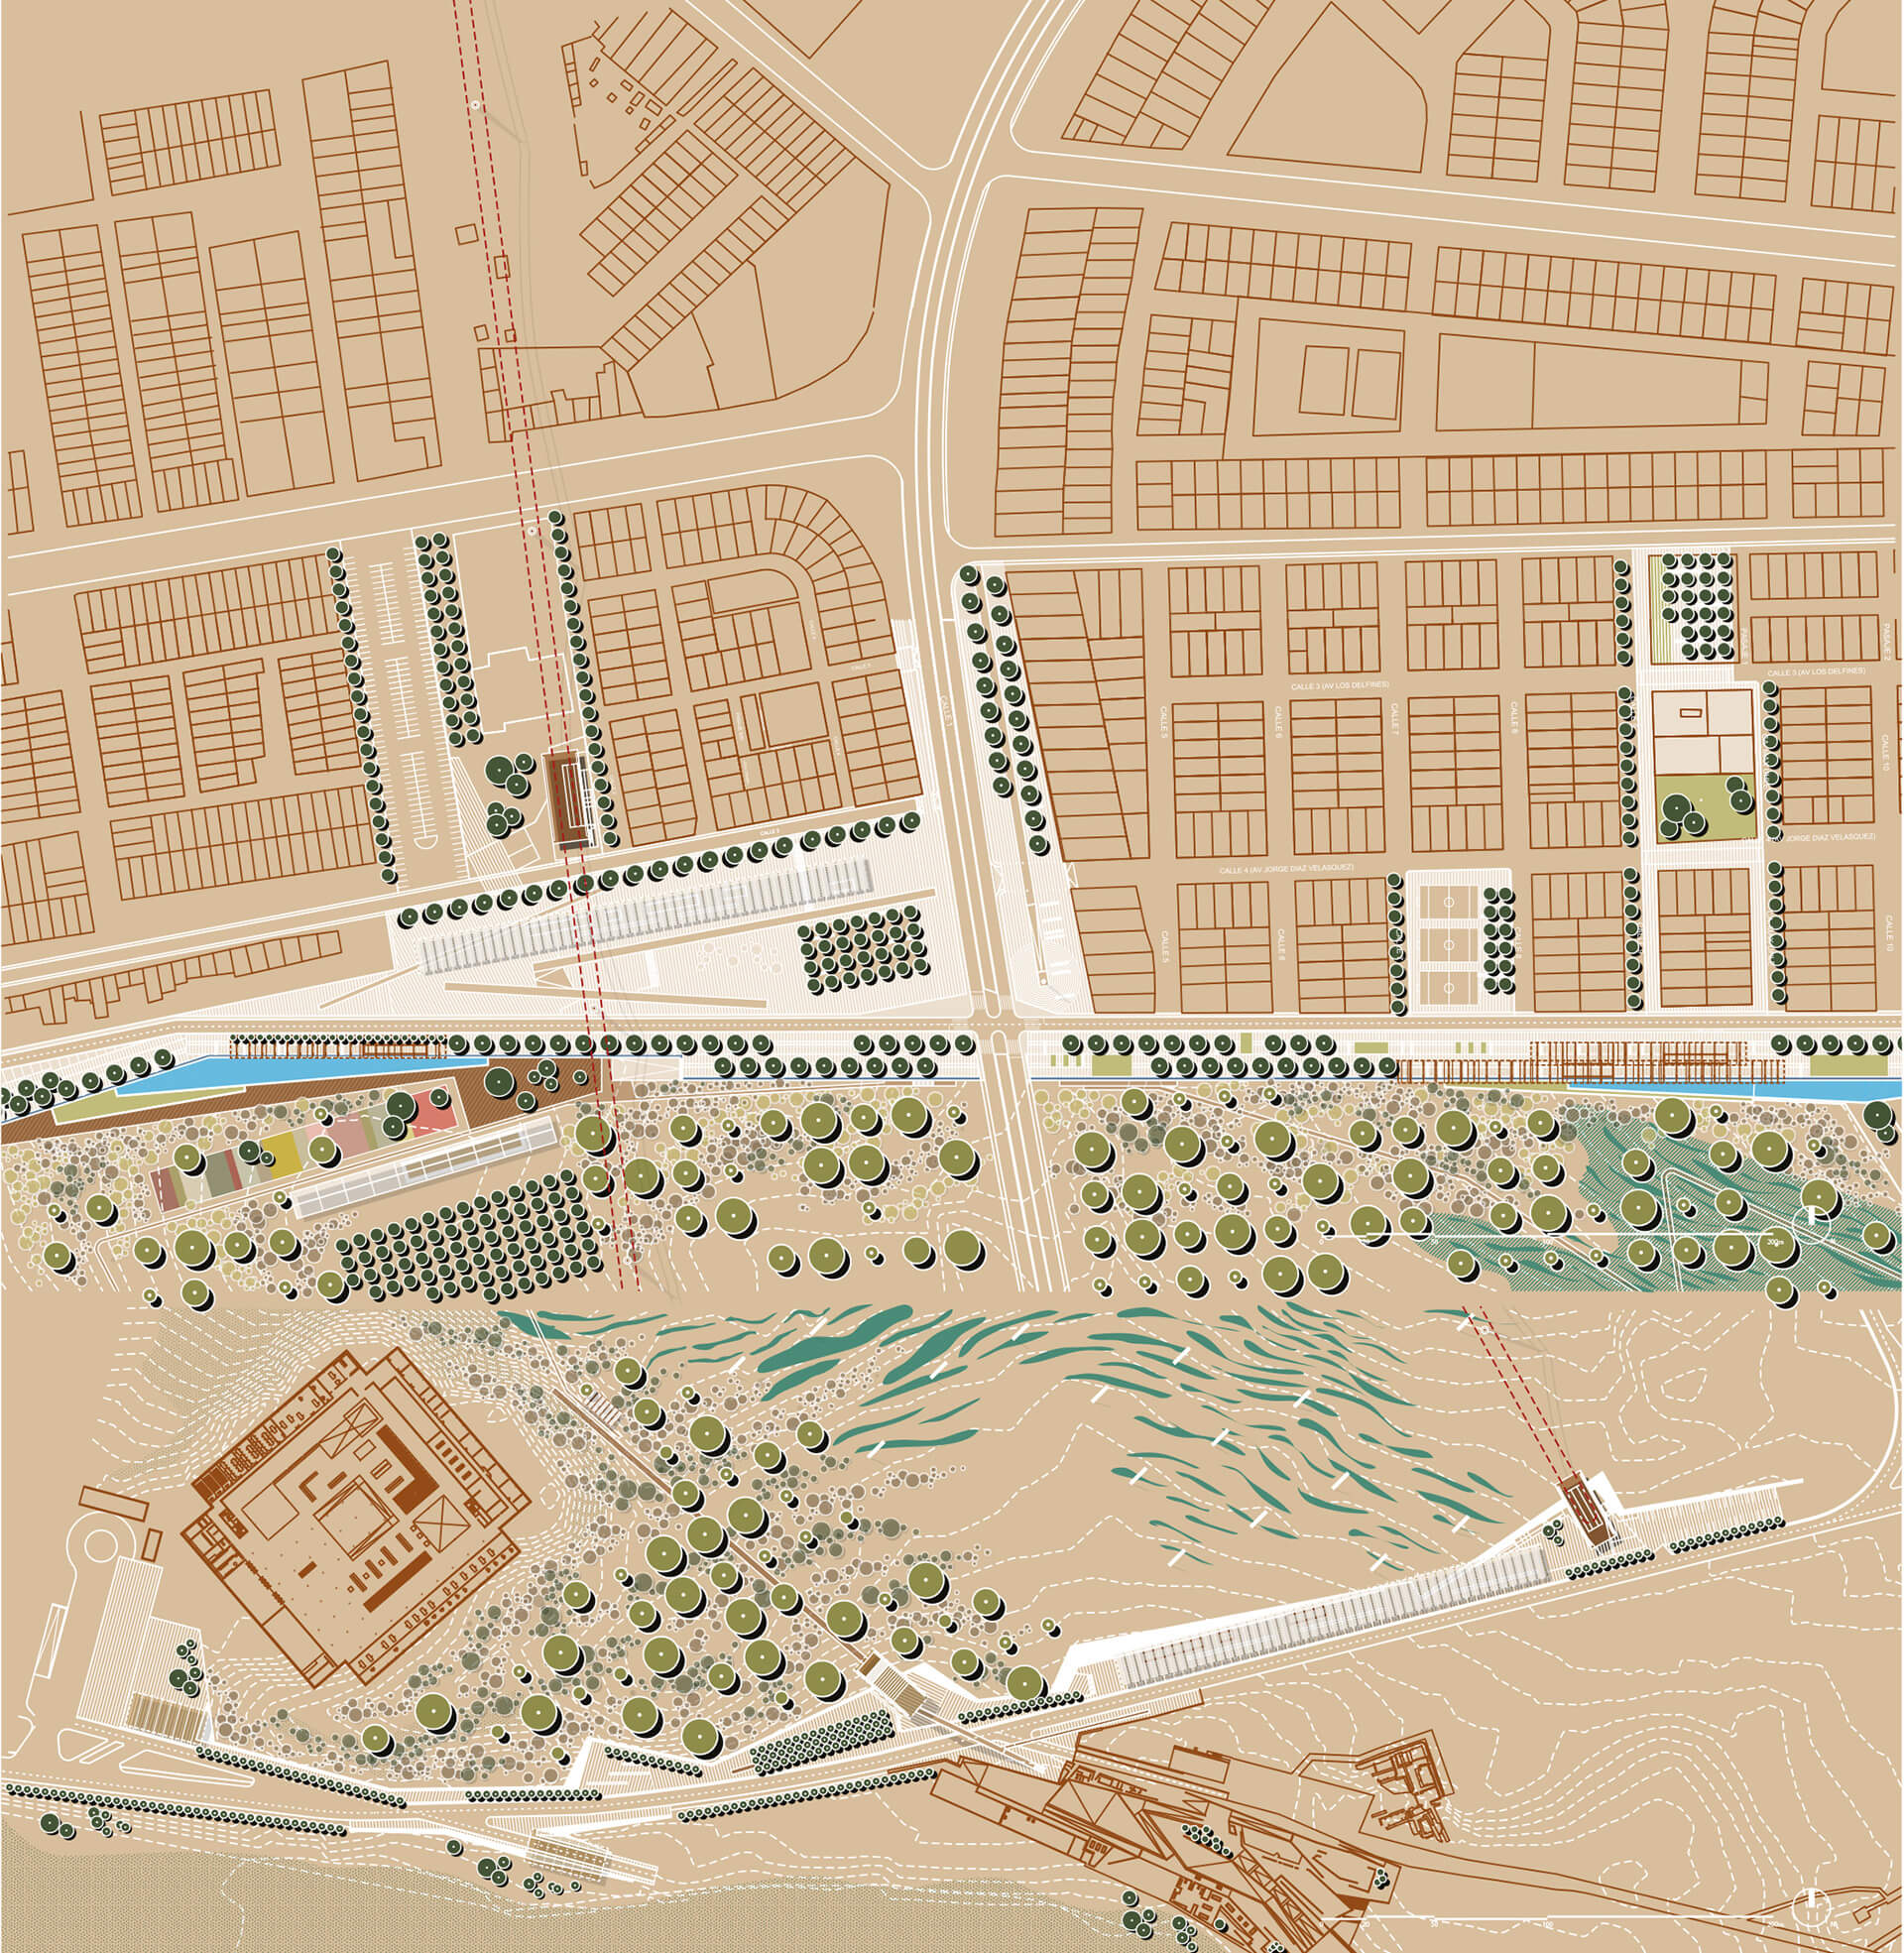 Masterplan of The Plinth and the Mantle| Parque Pachacamac: The Mantle and the Plinth | Alfaro Lachhwani McKay | STIRworld